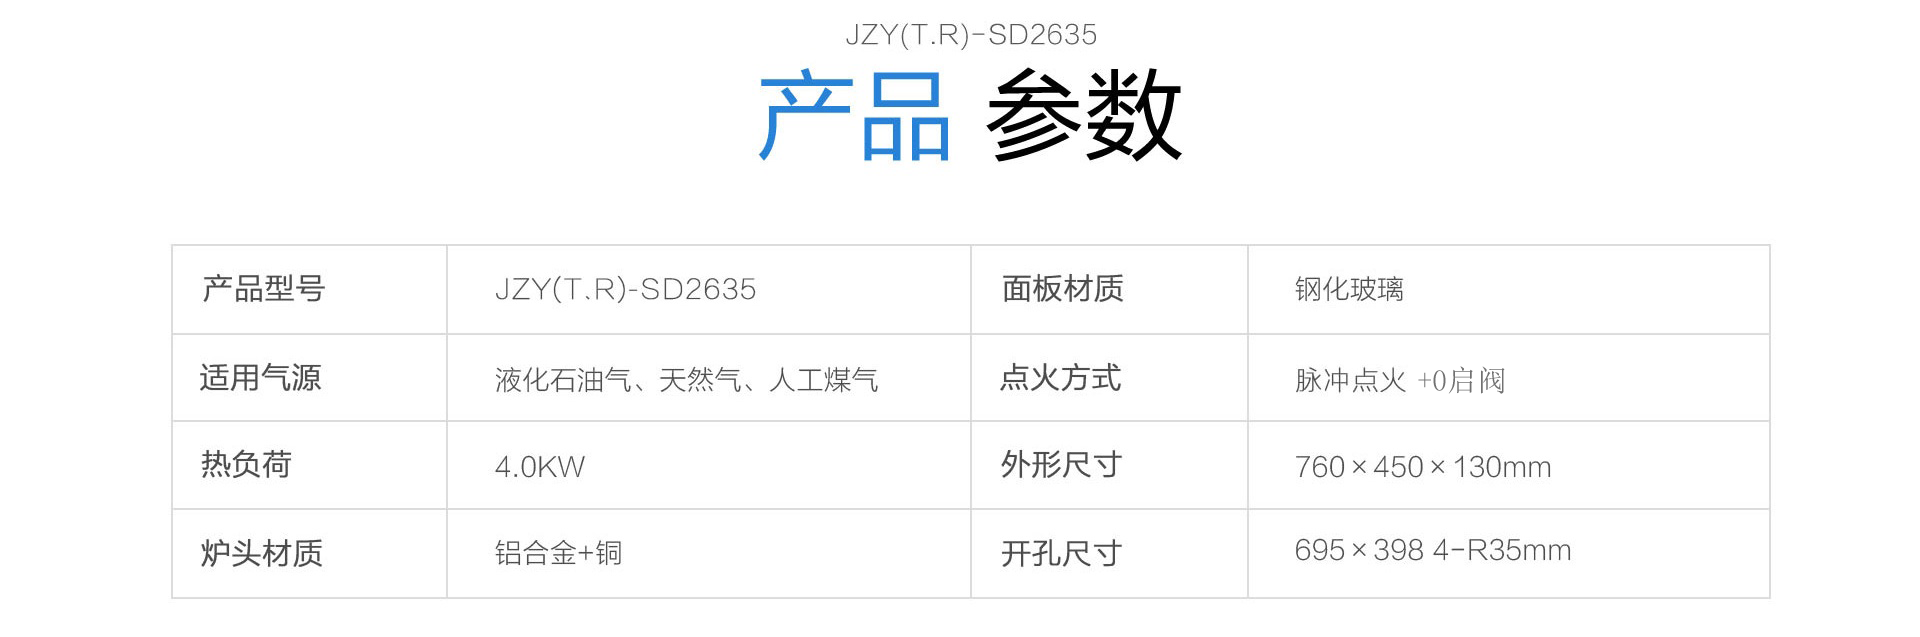 sd2635 拷贝.png